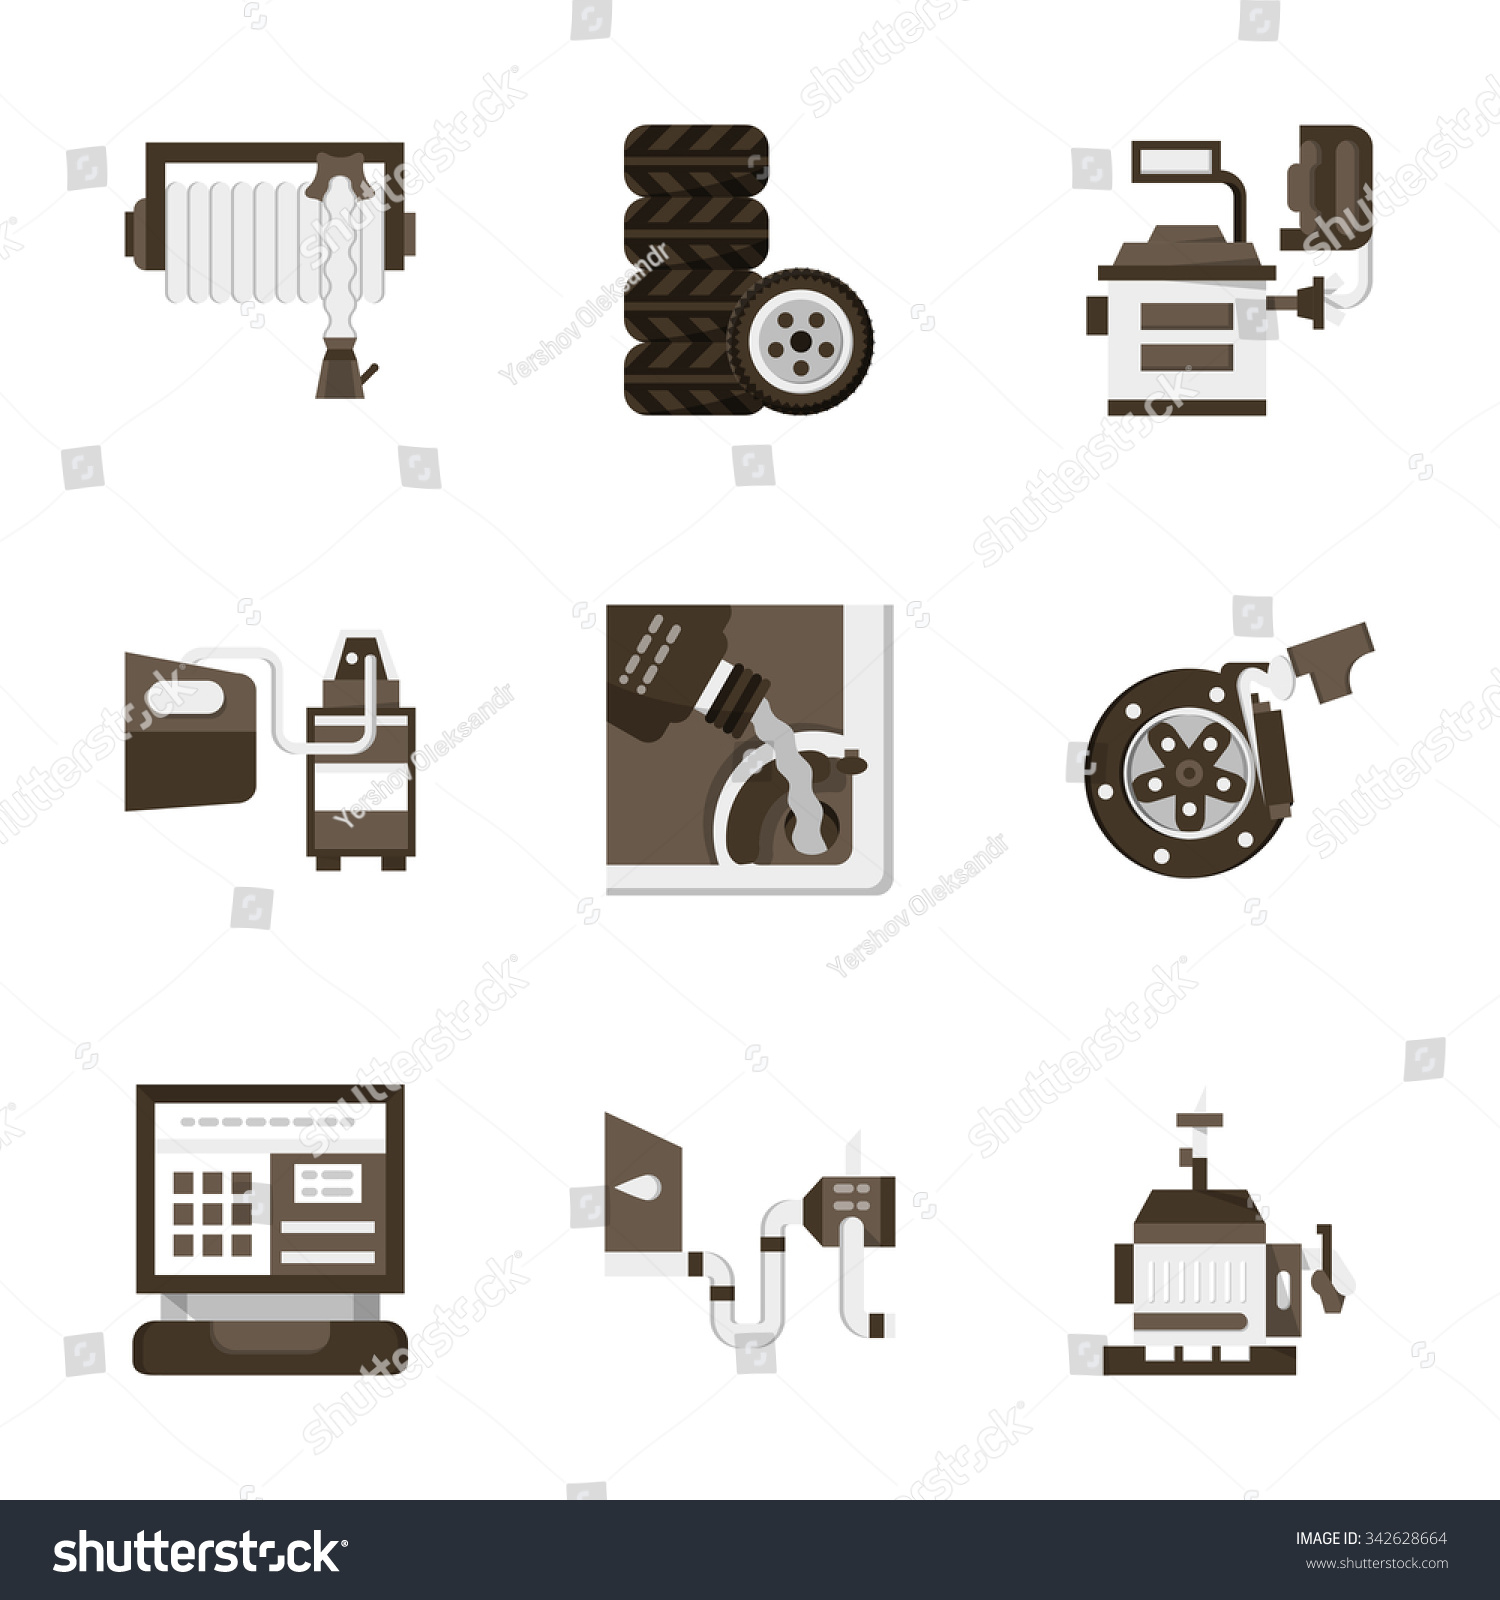 Set stylish flat icons symbols car stock illustration 342628664 set of stylish flat icons and symbols for car service and store equipment for measuring buycottarizona Gallery